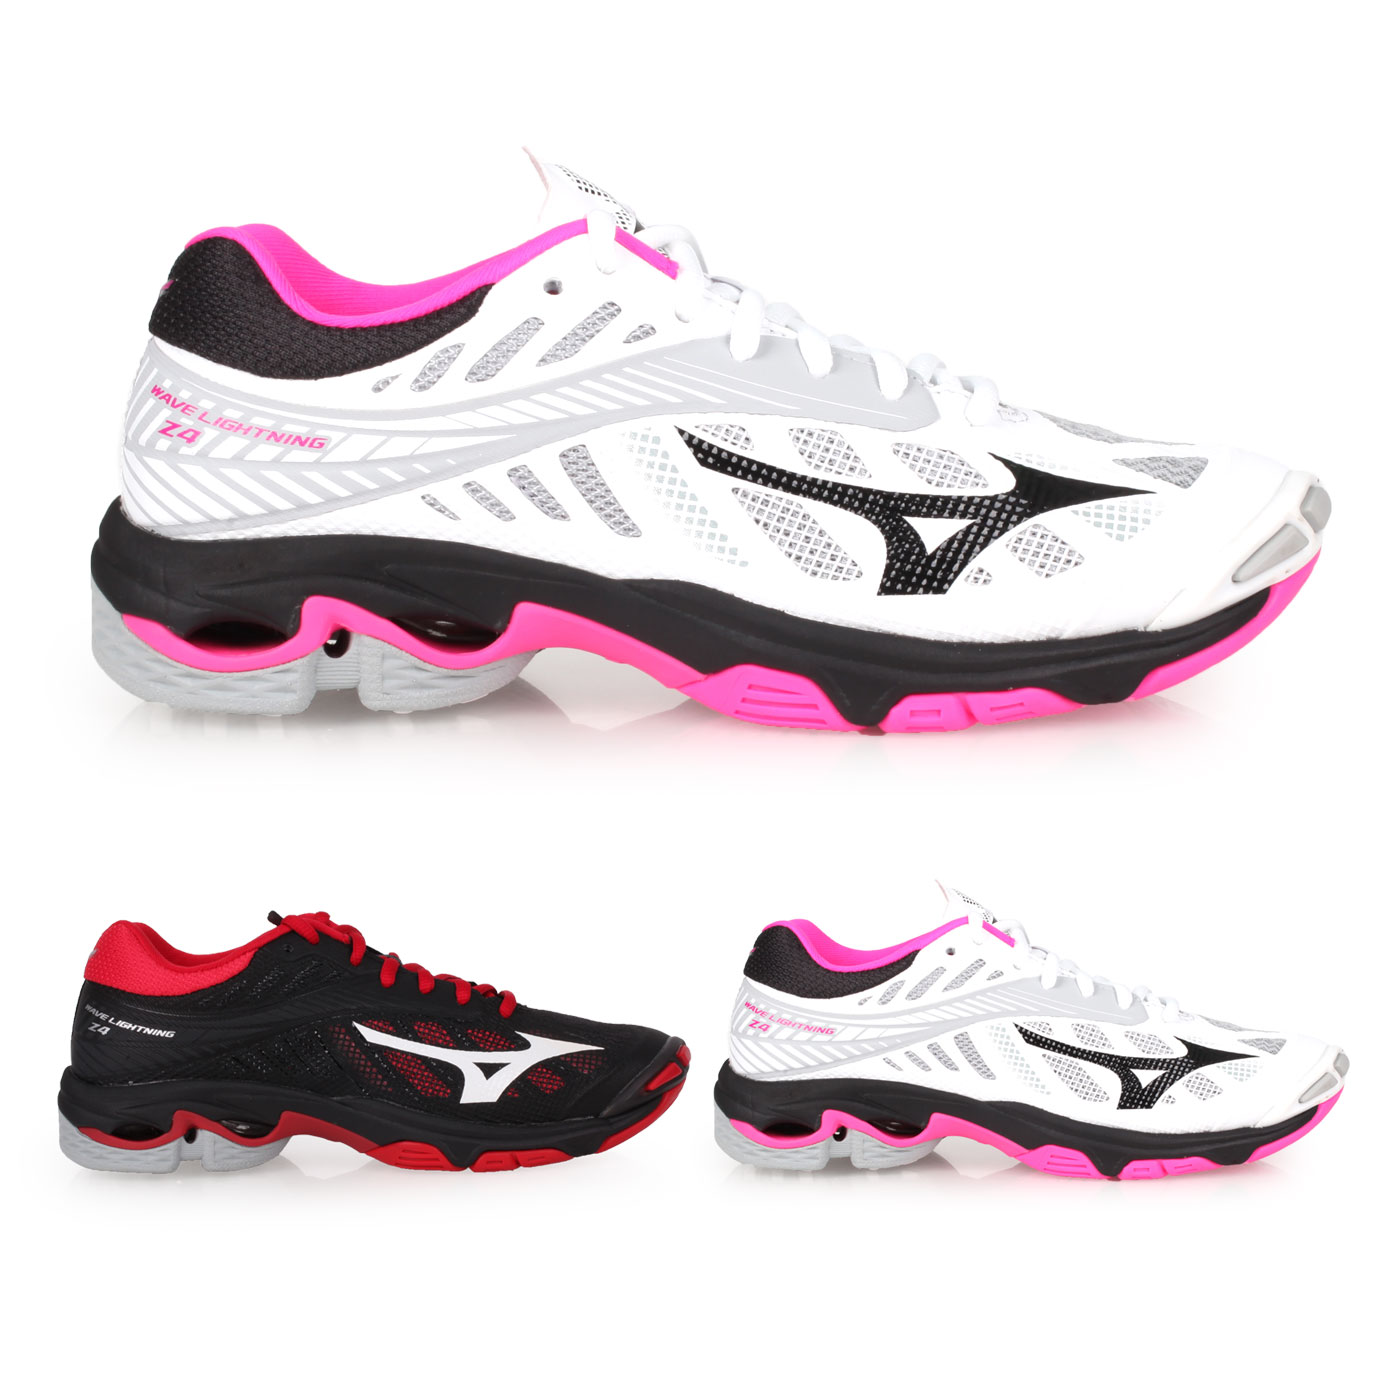 MIZUNO 女排球鞋  @WAVE LIGHTNING Z4@V1GC180064